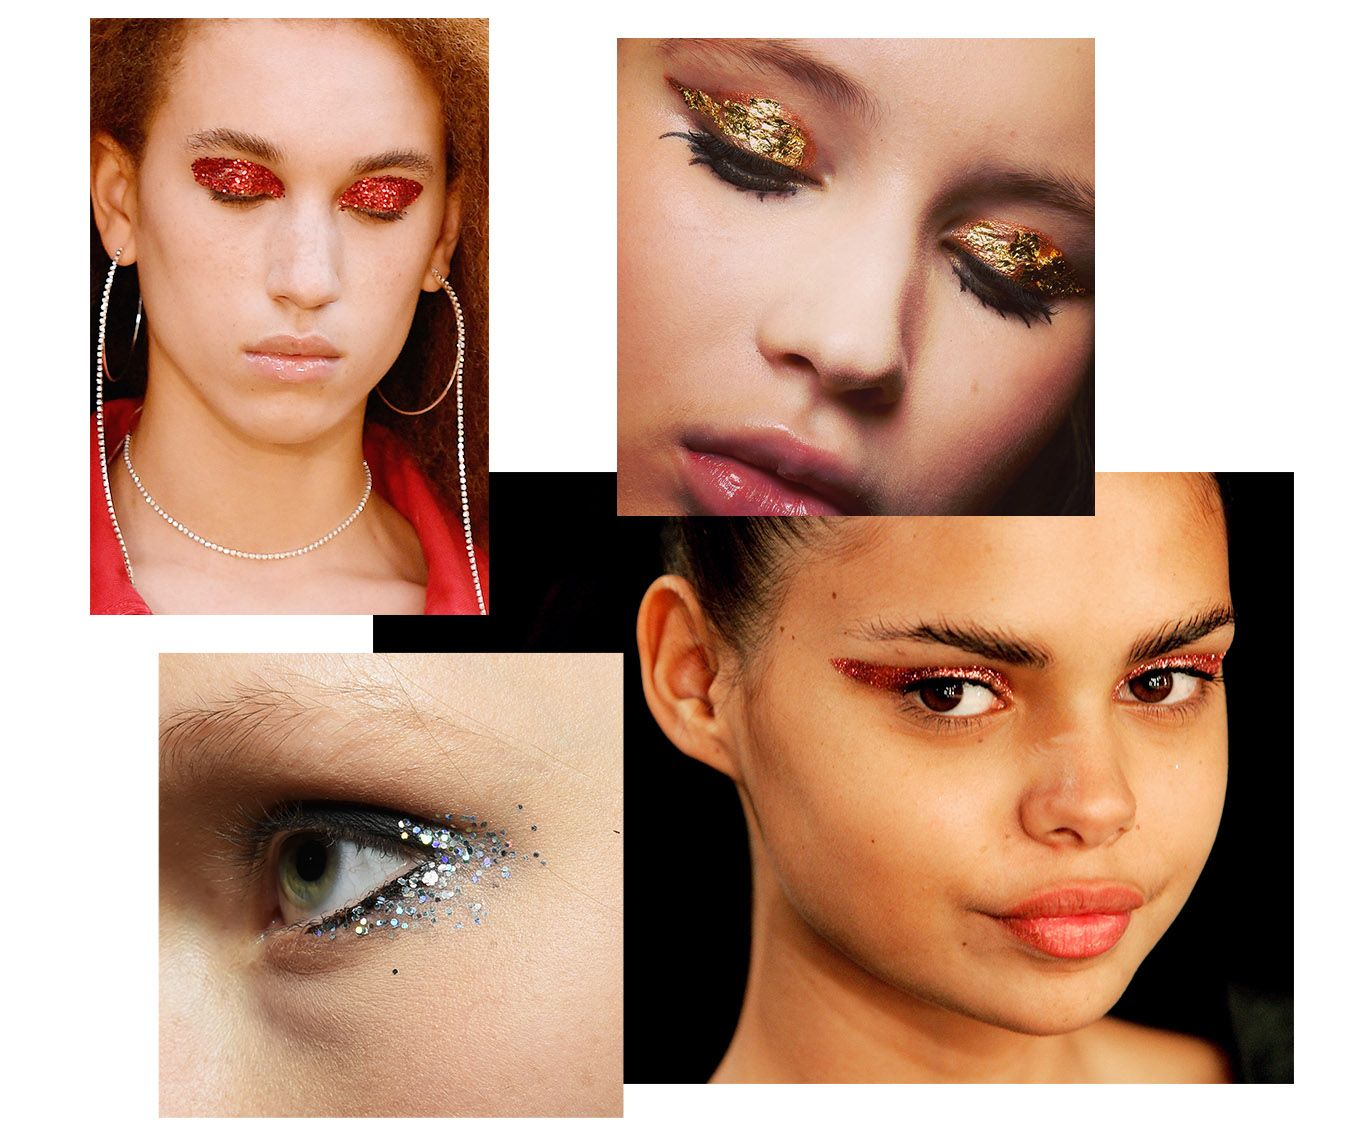 Women with different eye-lid shade trends